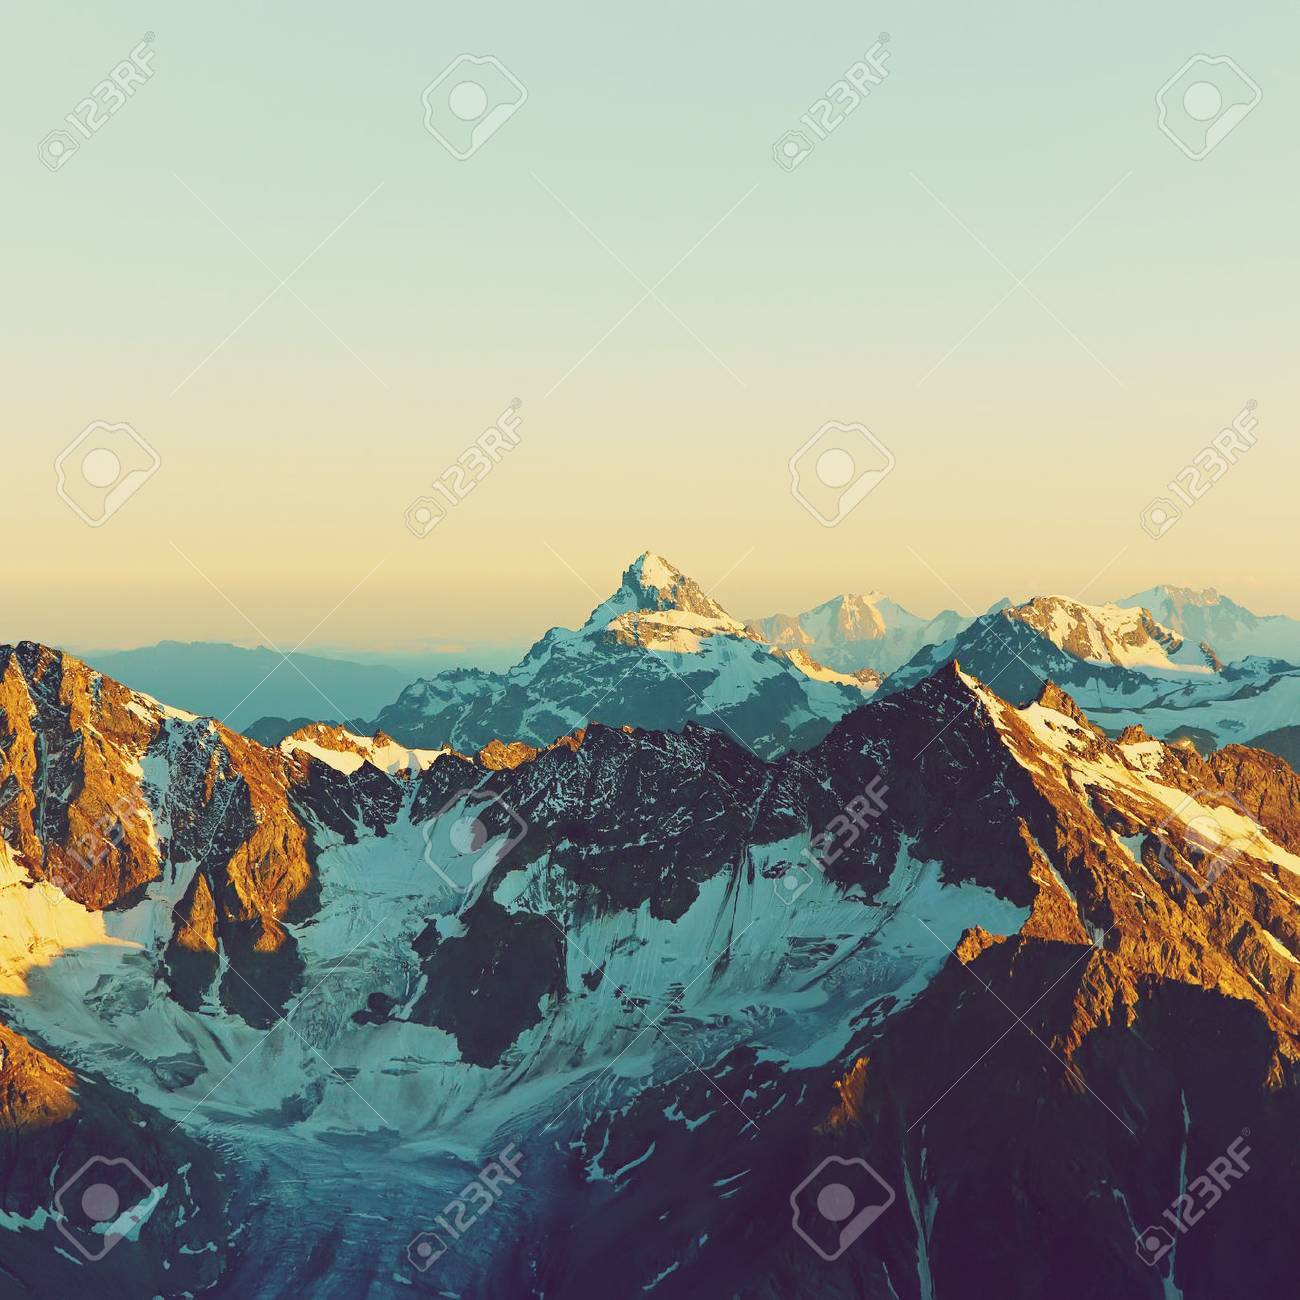 alpine landscape with peaks covered by snow and clouds. natural mountain background Stock Photo - 49138781